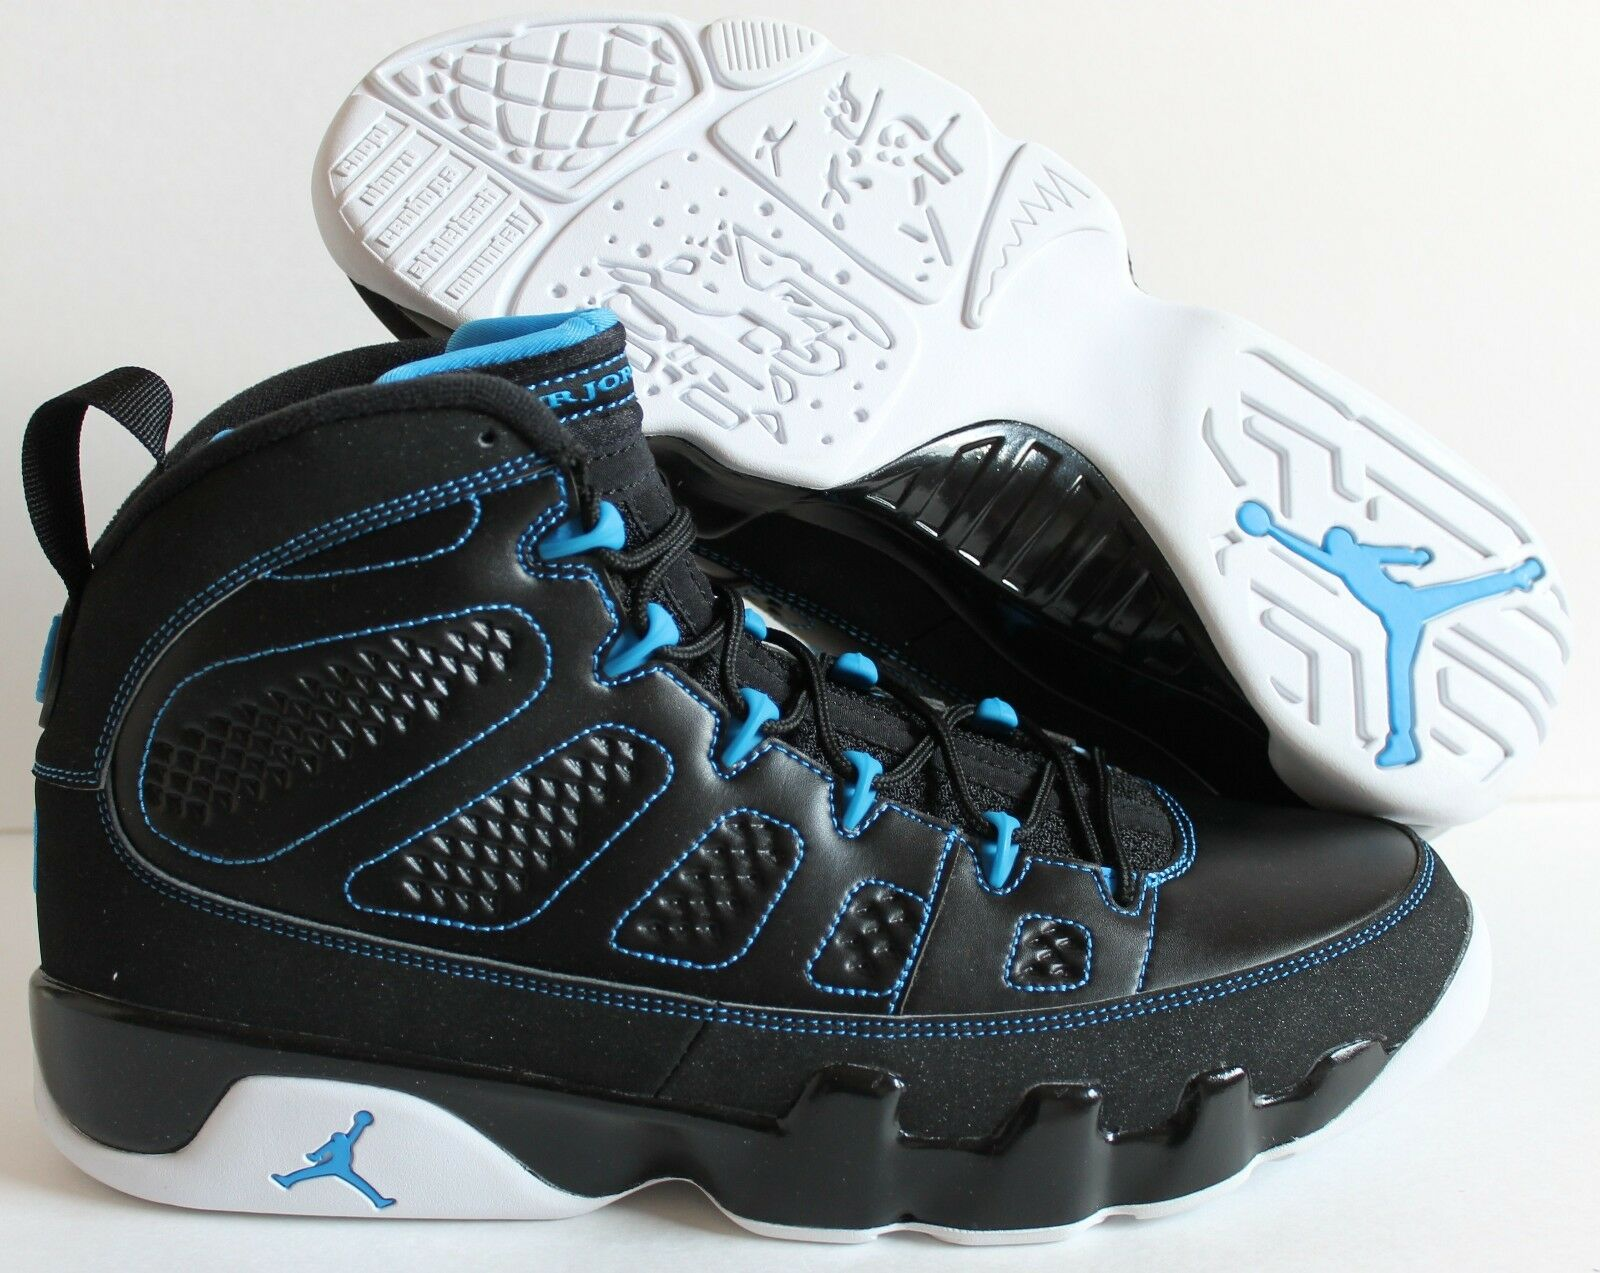 outlet store ef5b8 caf2e NIKE AIR JORDAN 9 RETRO Noir -blanc -PHOTO Bleu SZ 13